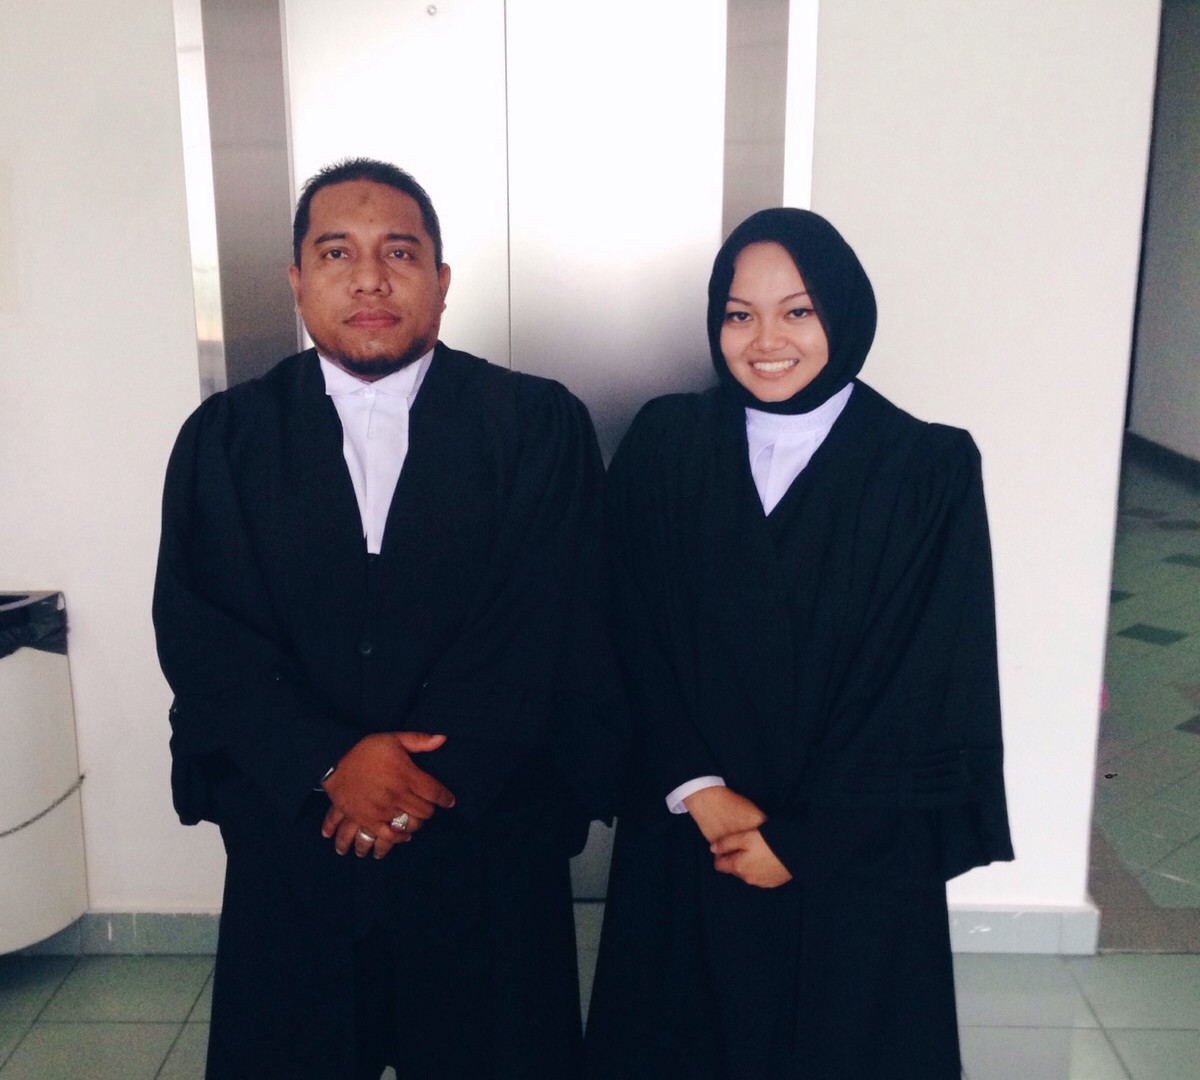 Our lawyer, Haselyn